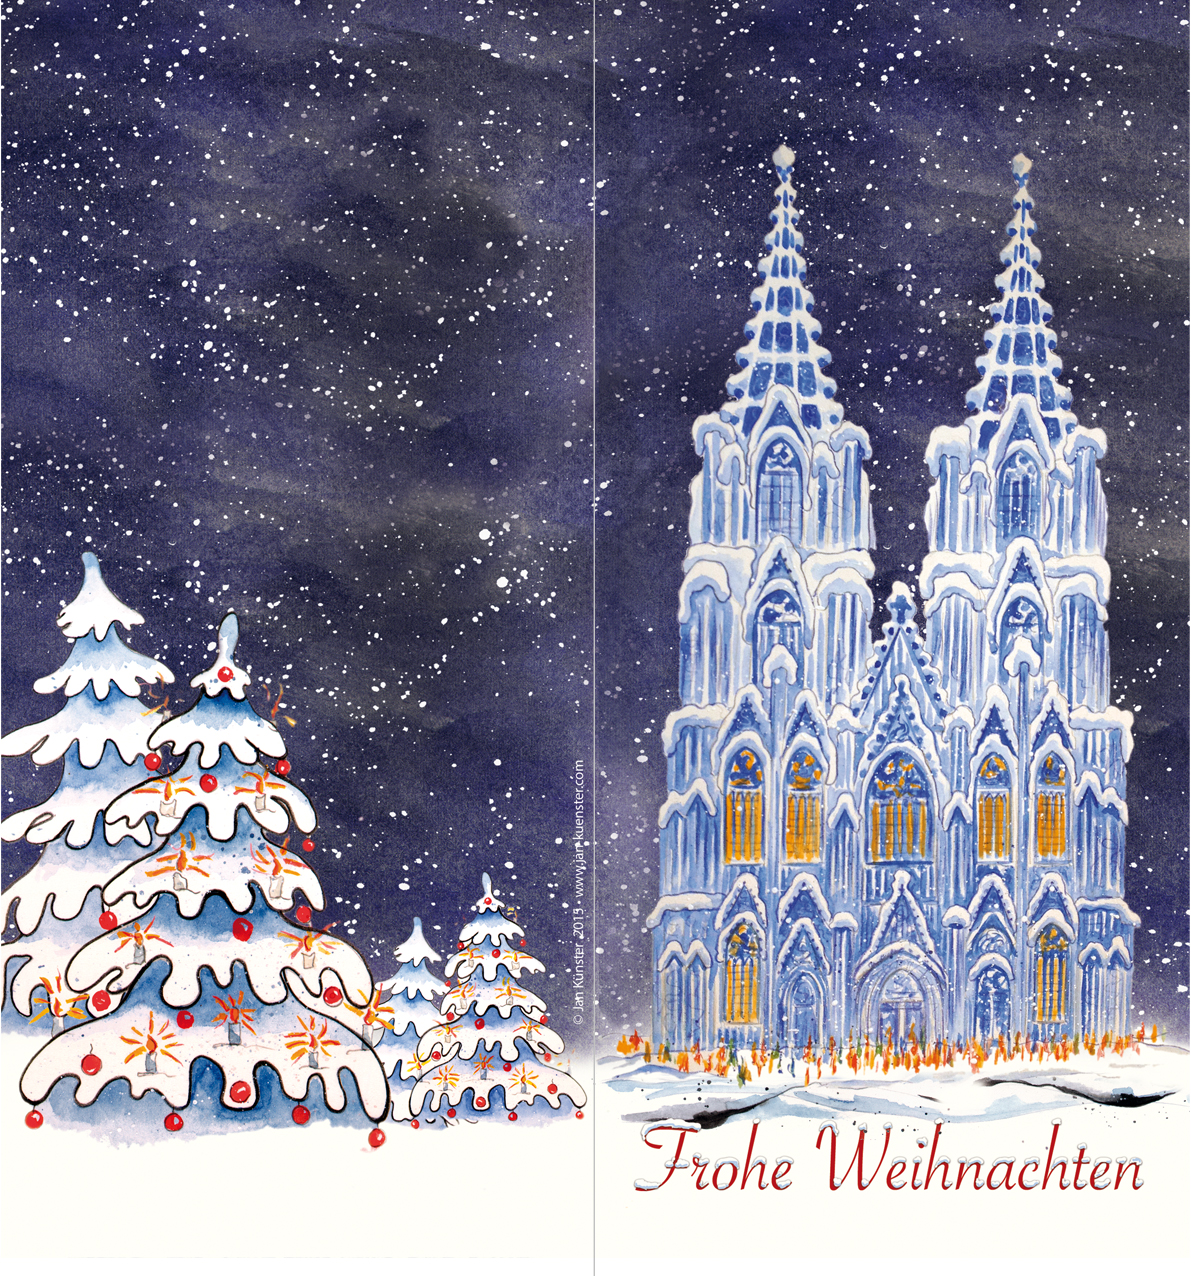 greeting card frohe weihnachten jan k nster bonn germany. Black Bedroom Furniture Sets. Home Design Ideas